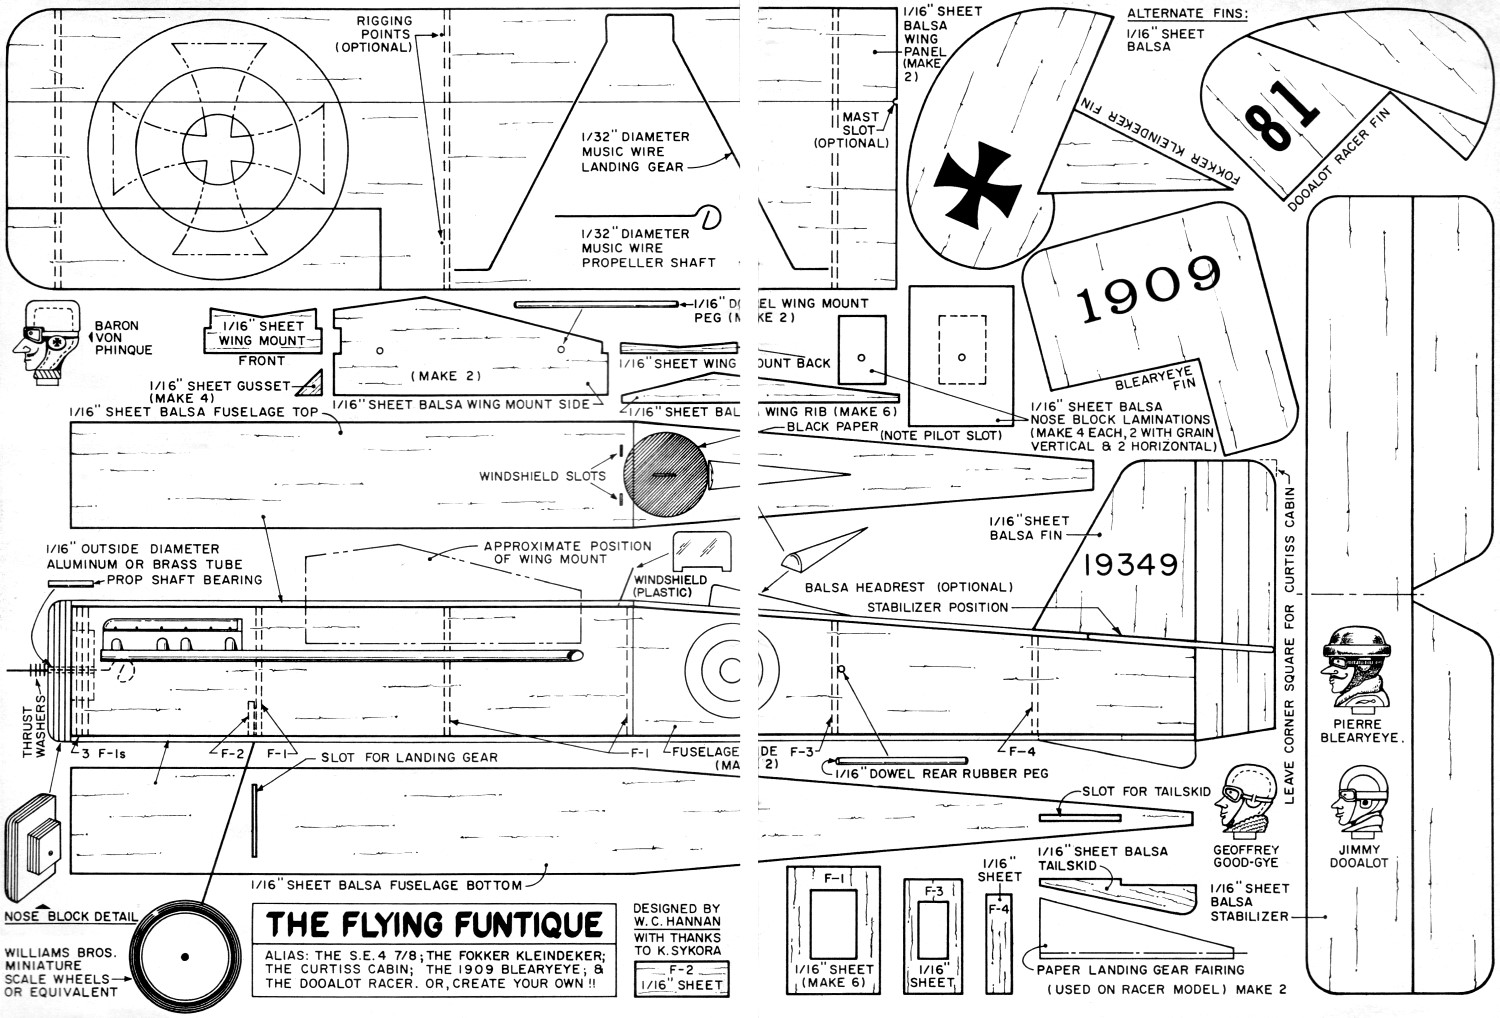 Flying funtique article plans april 1969 american aircraft flying funtique plans airplanes and rockets malvernweather Image collections